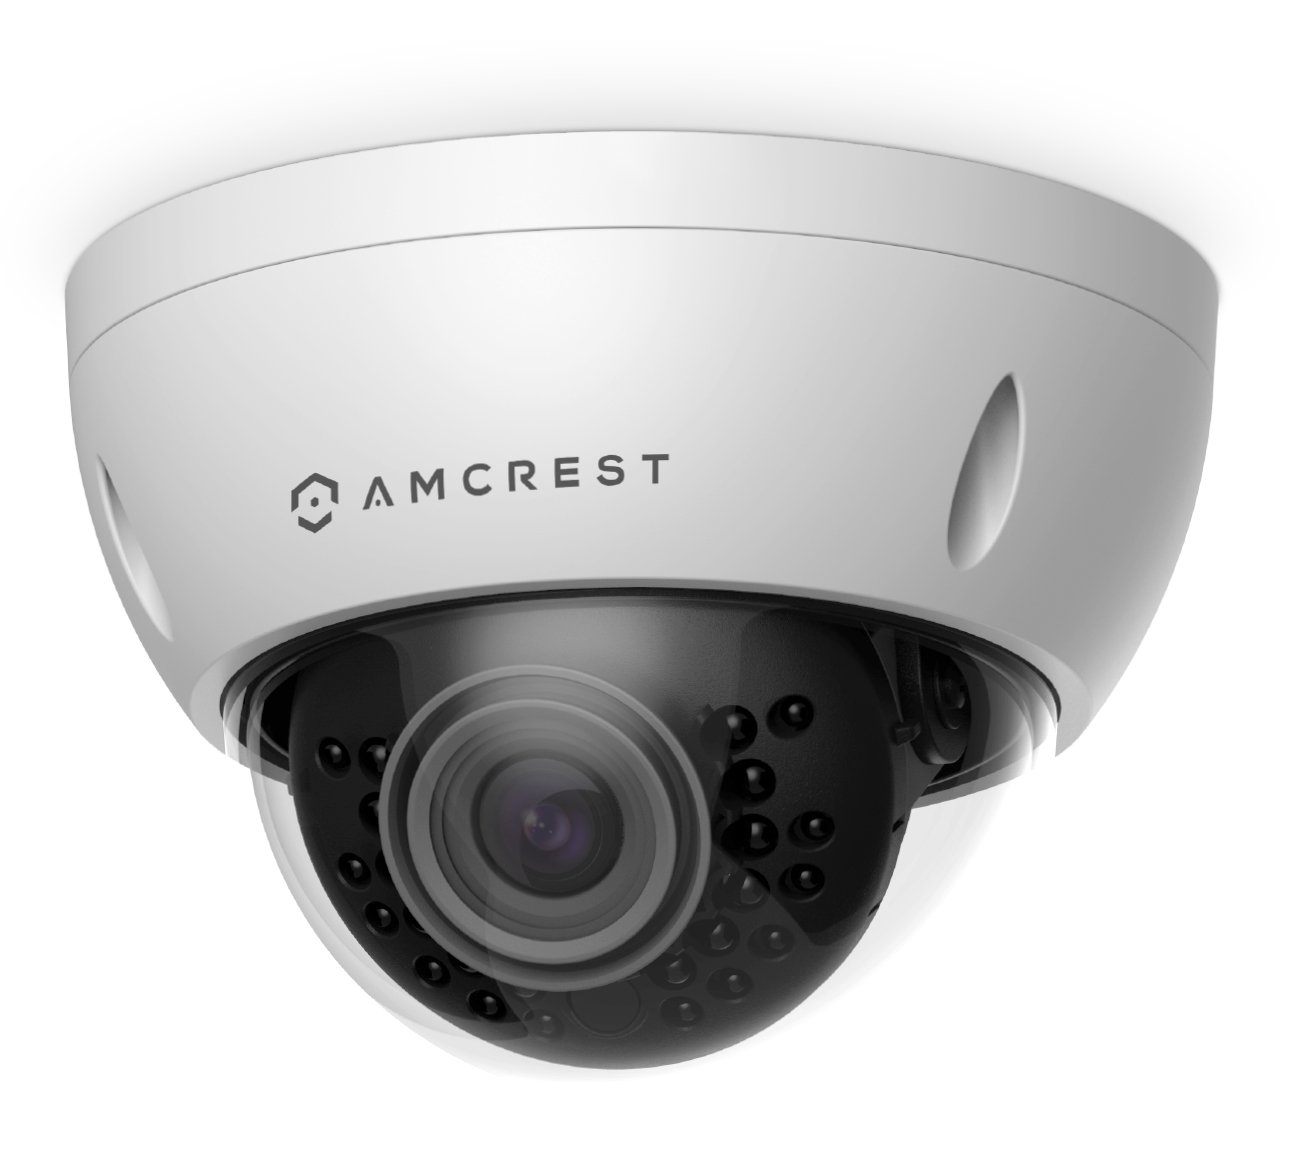 Amcrest ProHD Outdoor 3 Megapixel POE Vandal Dome IP Security Camera - IP67 Weatherproof, IK10 Vandal-Proof, 3MP (2048 TVL), IP3M-956E (White)